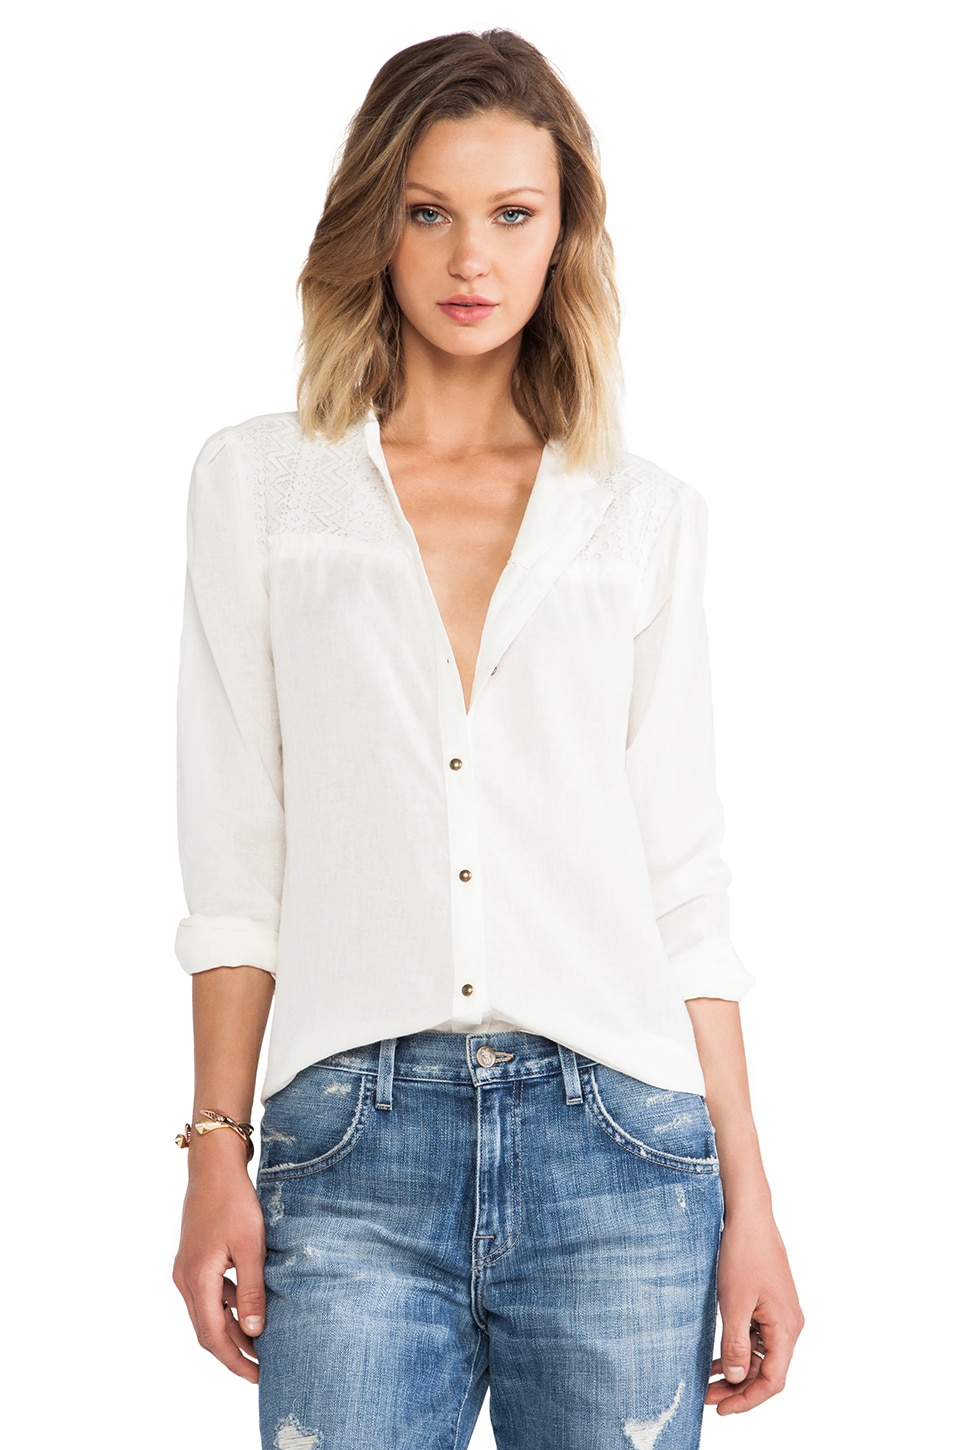 ANINE BING Lace Detail Blouse in White